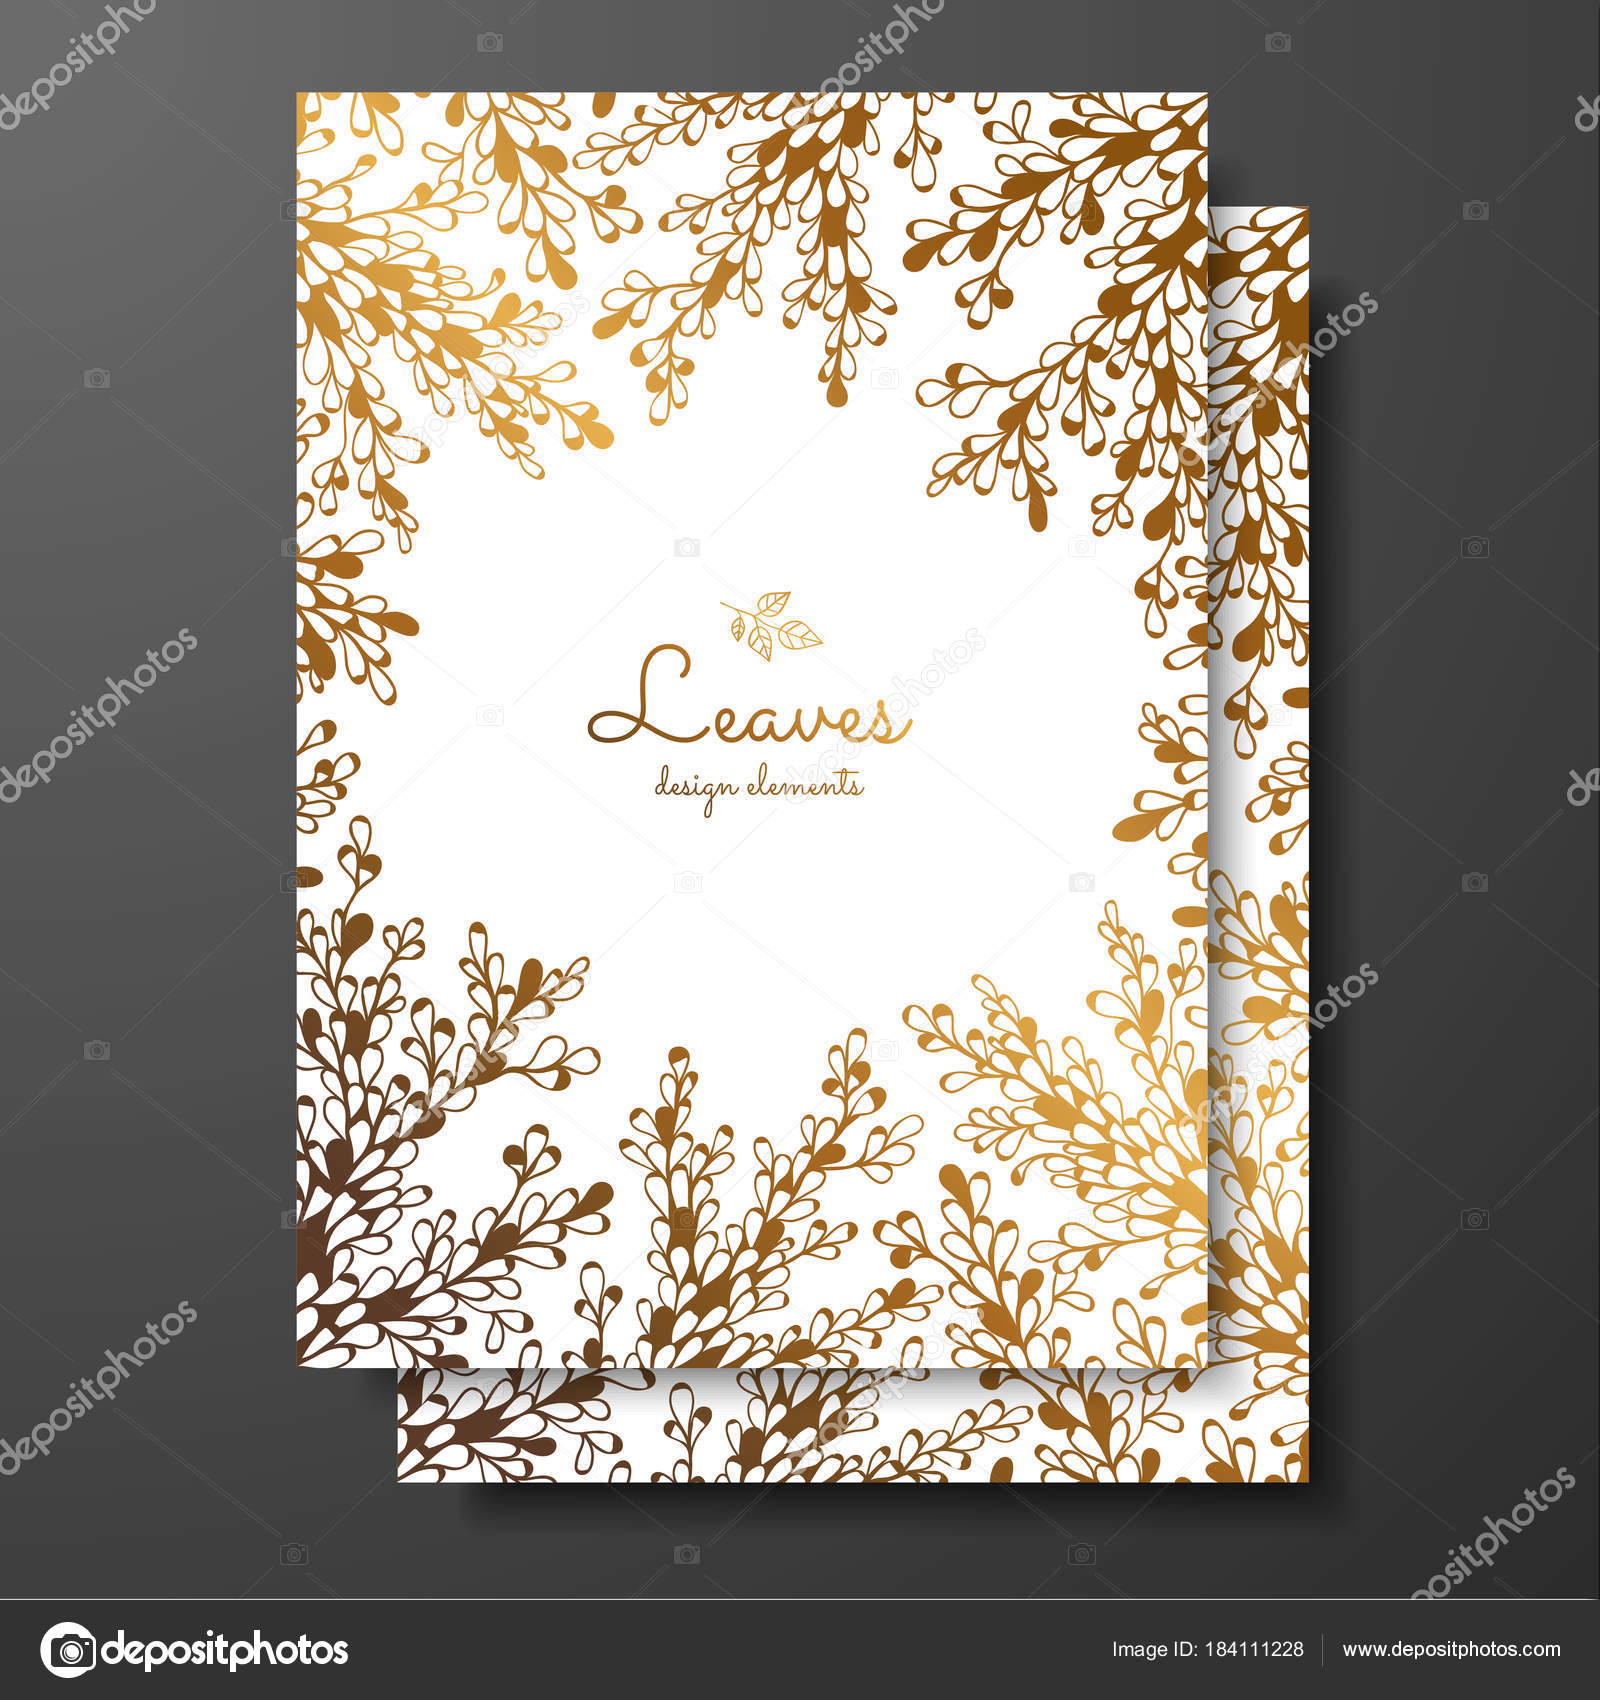 gold floral card template with abstract plants template frame for